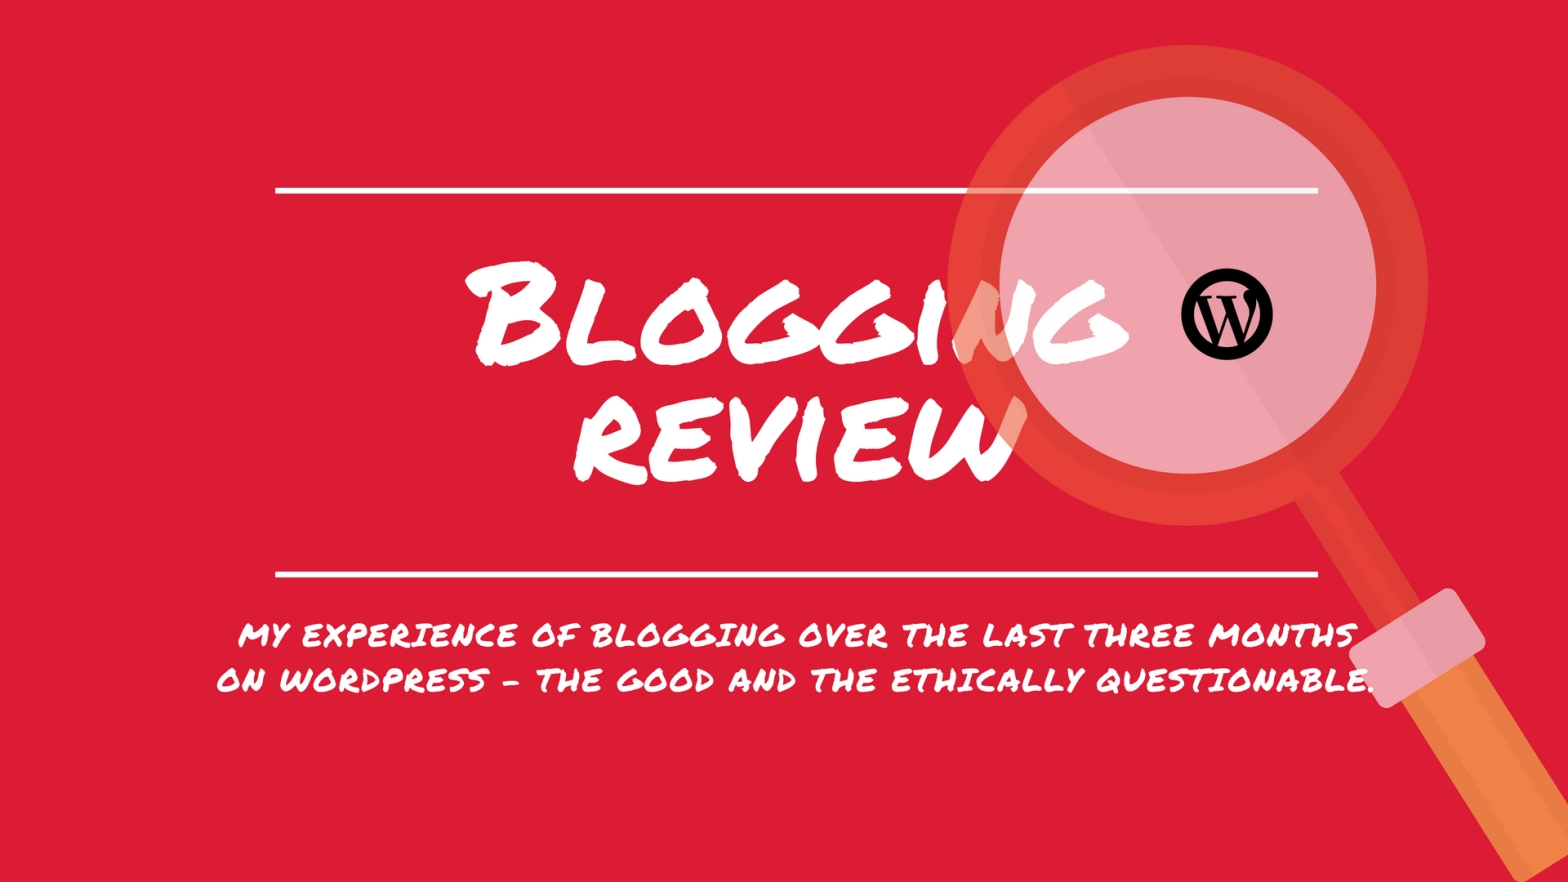 My experience of blogging over the last three months on WordPress - the good and the ethically questionable